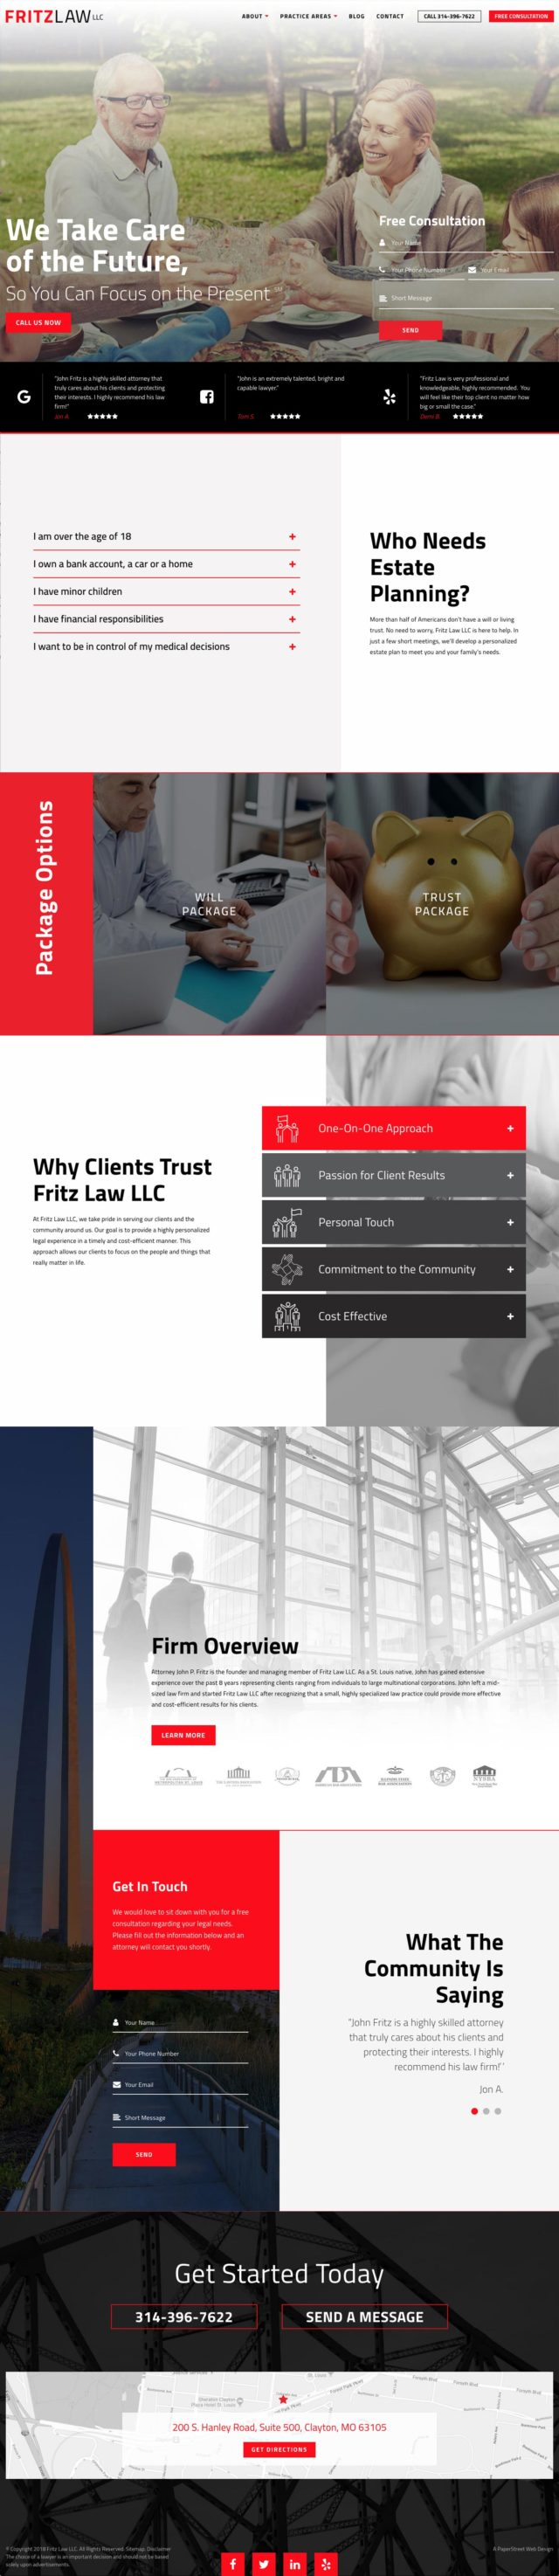 Fritz Law LLC Lawyer Website Screenshot